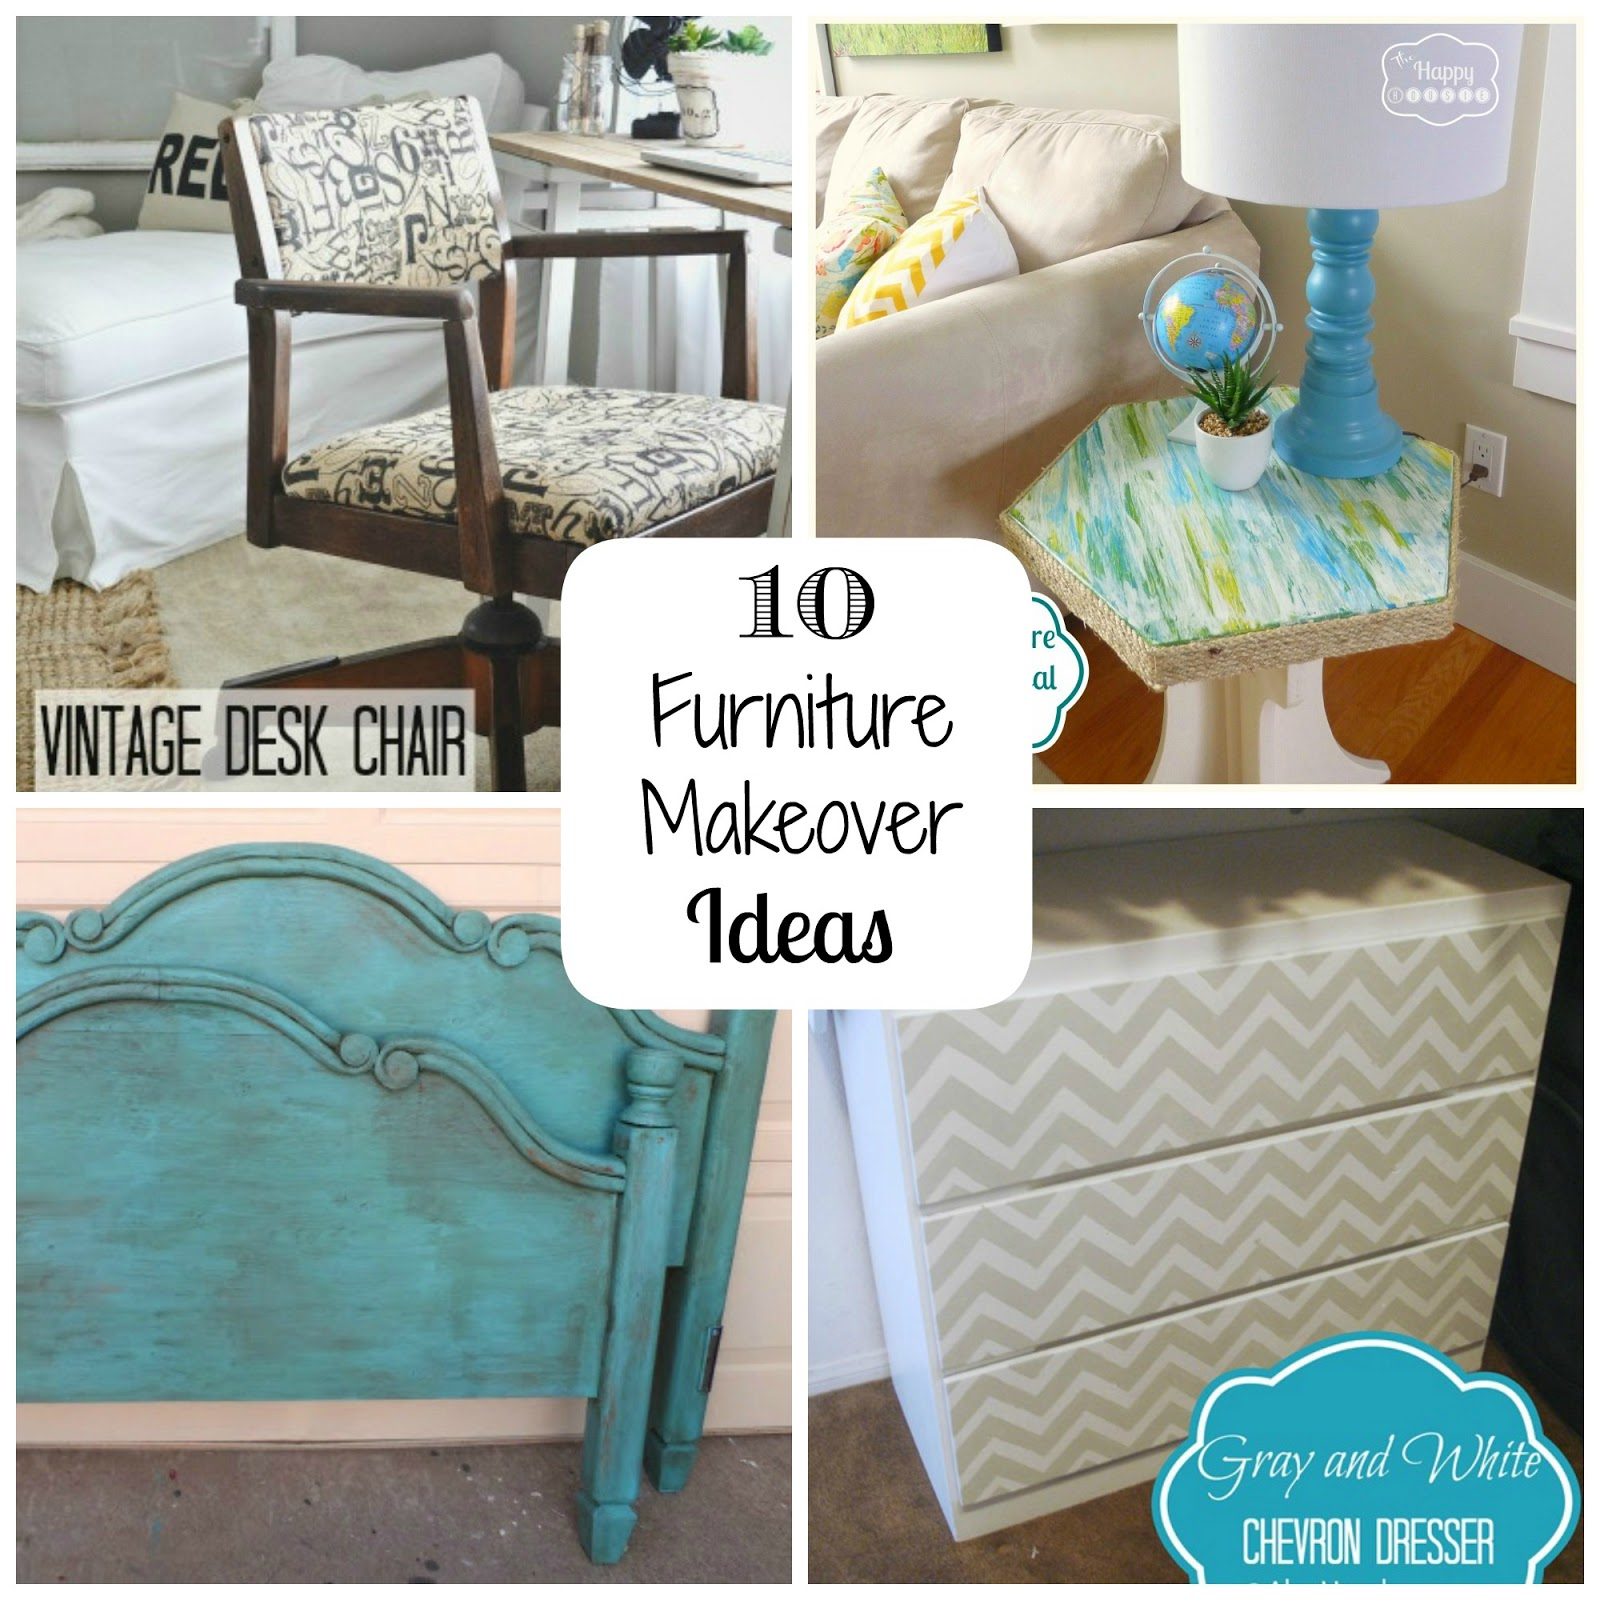 Fun Home Things 10 Furniture Makeover Ideas